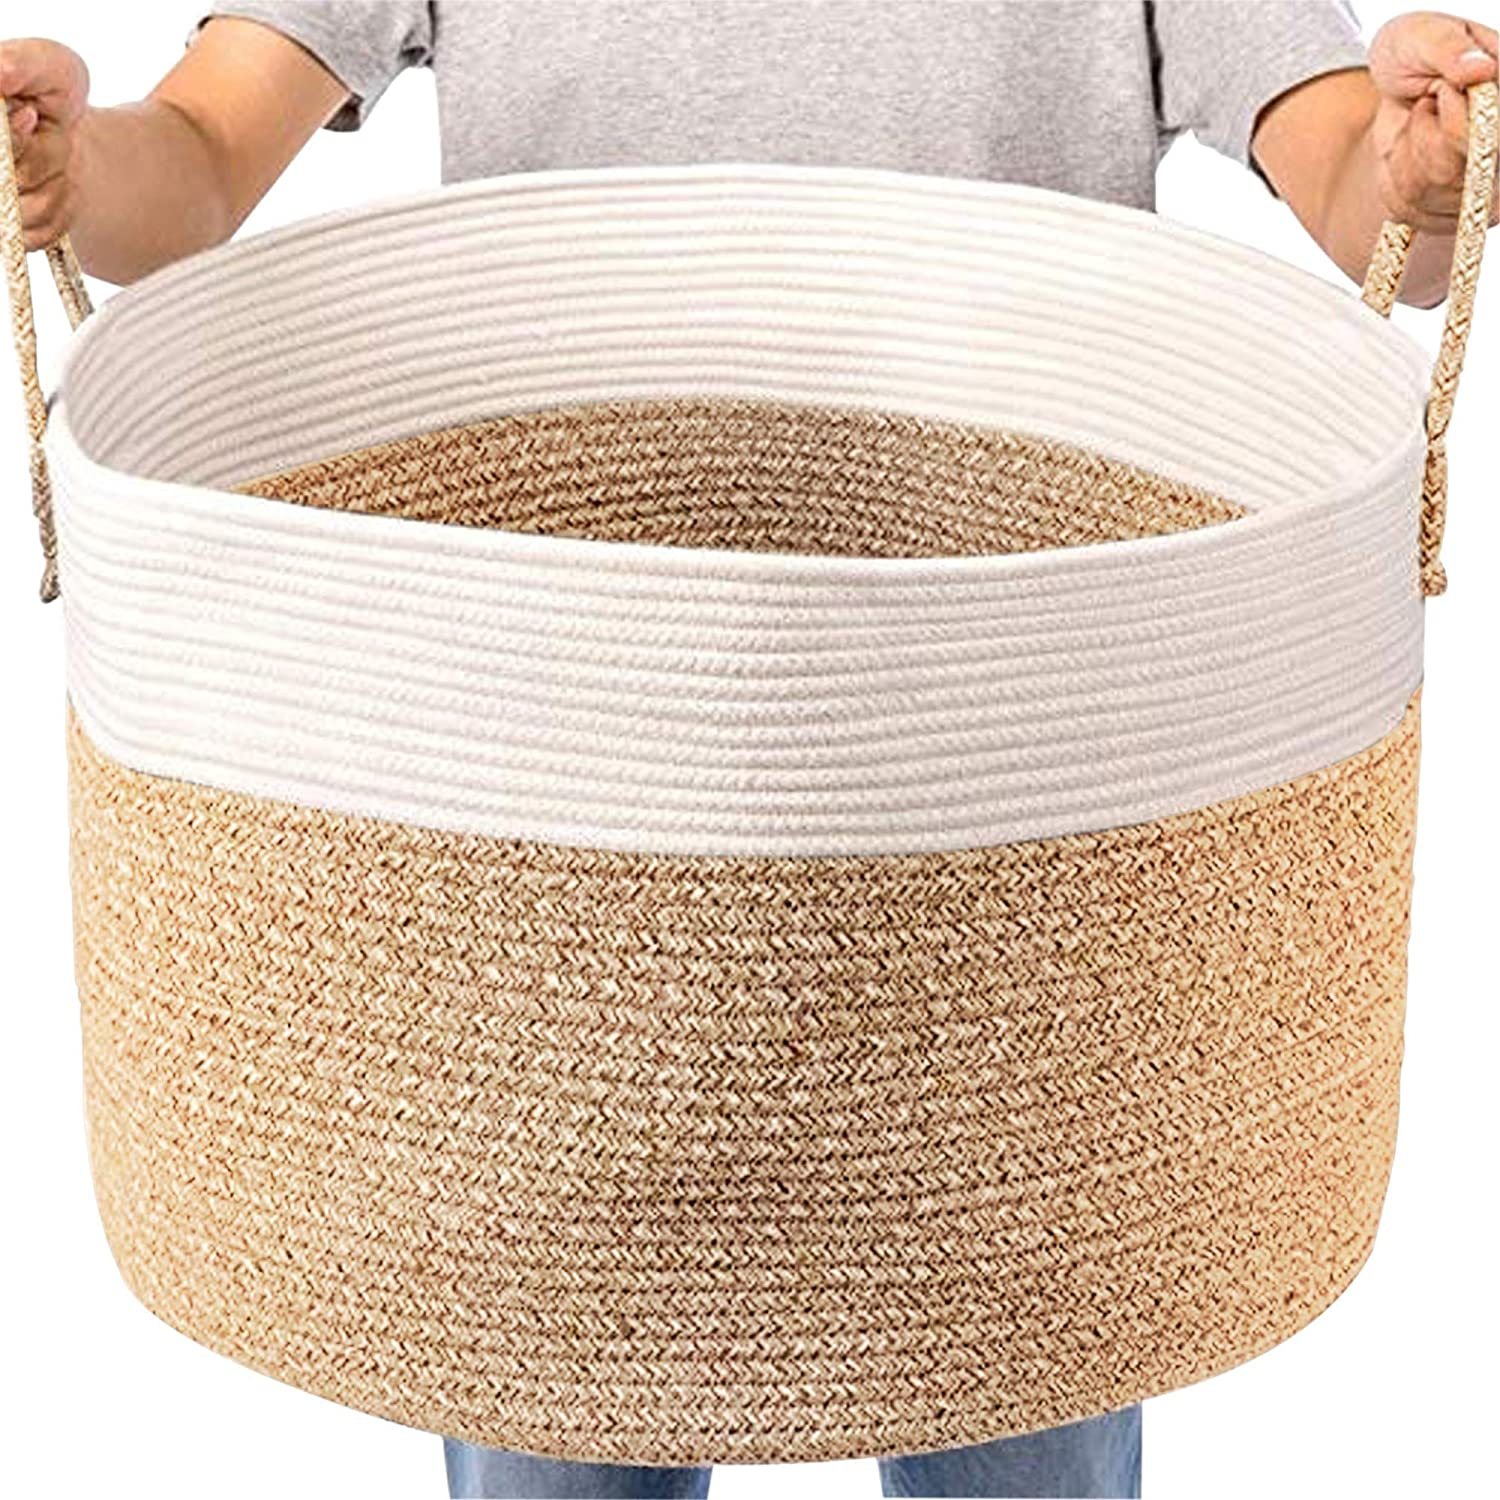 """XXL 20"""" x 13.8"""" Home, Kitchen, Bedroom & Toddler Playroom Organizer 